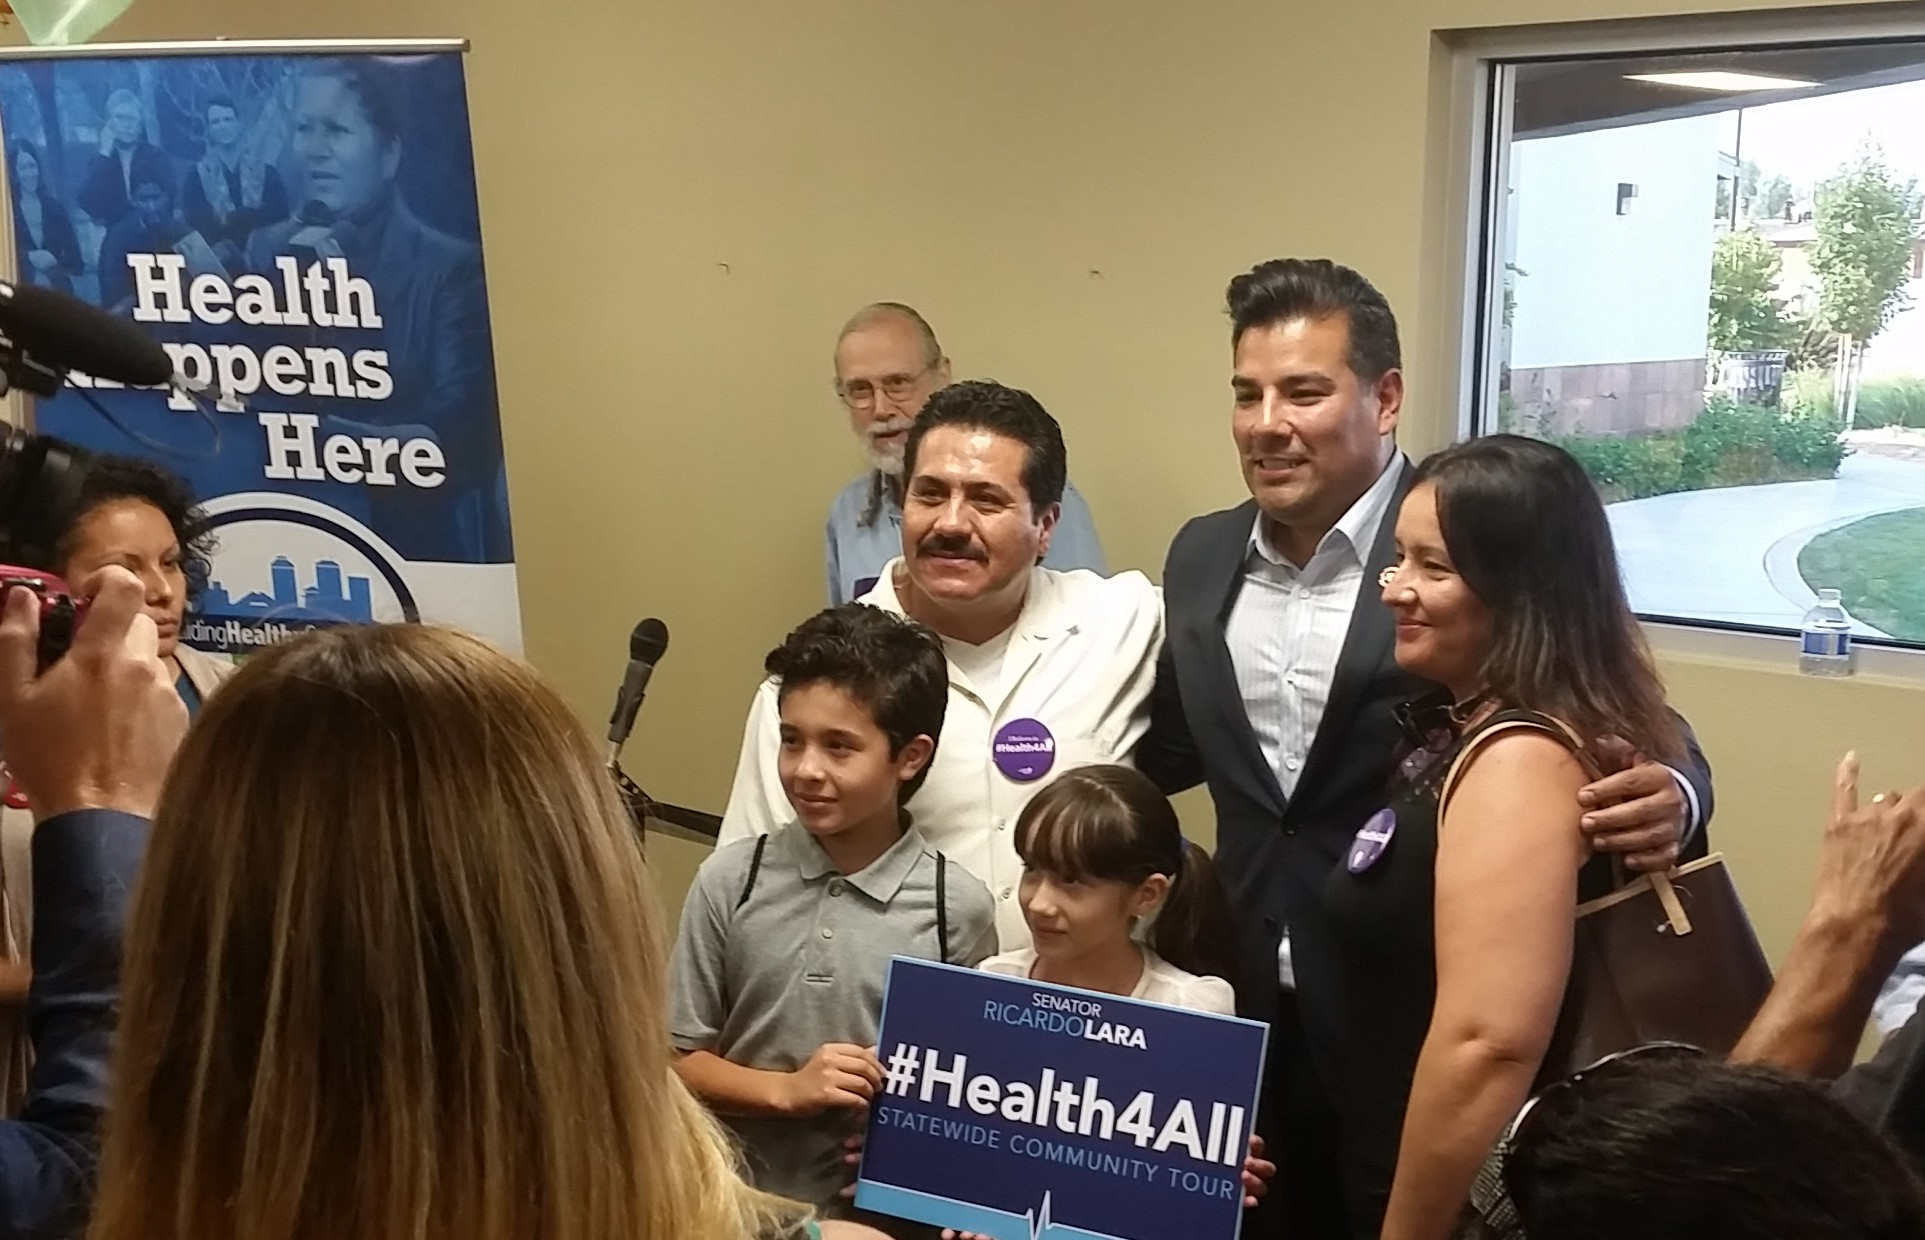 State Senator Lara's #Health4All Tour Stops in Fresno